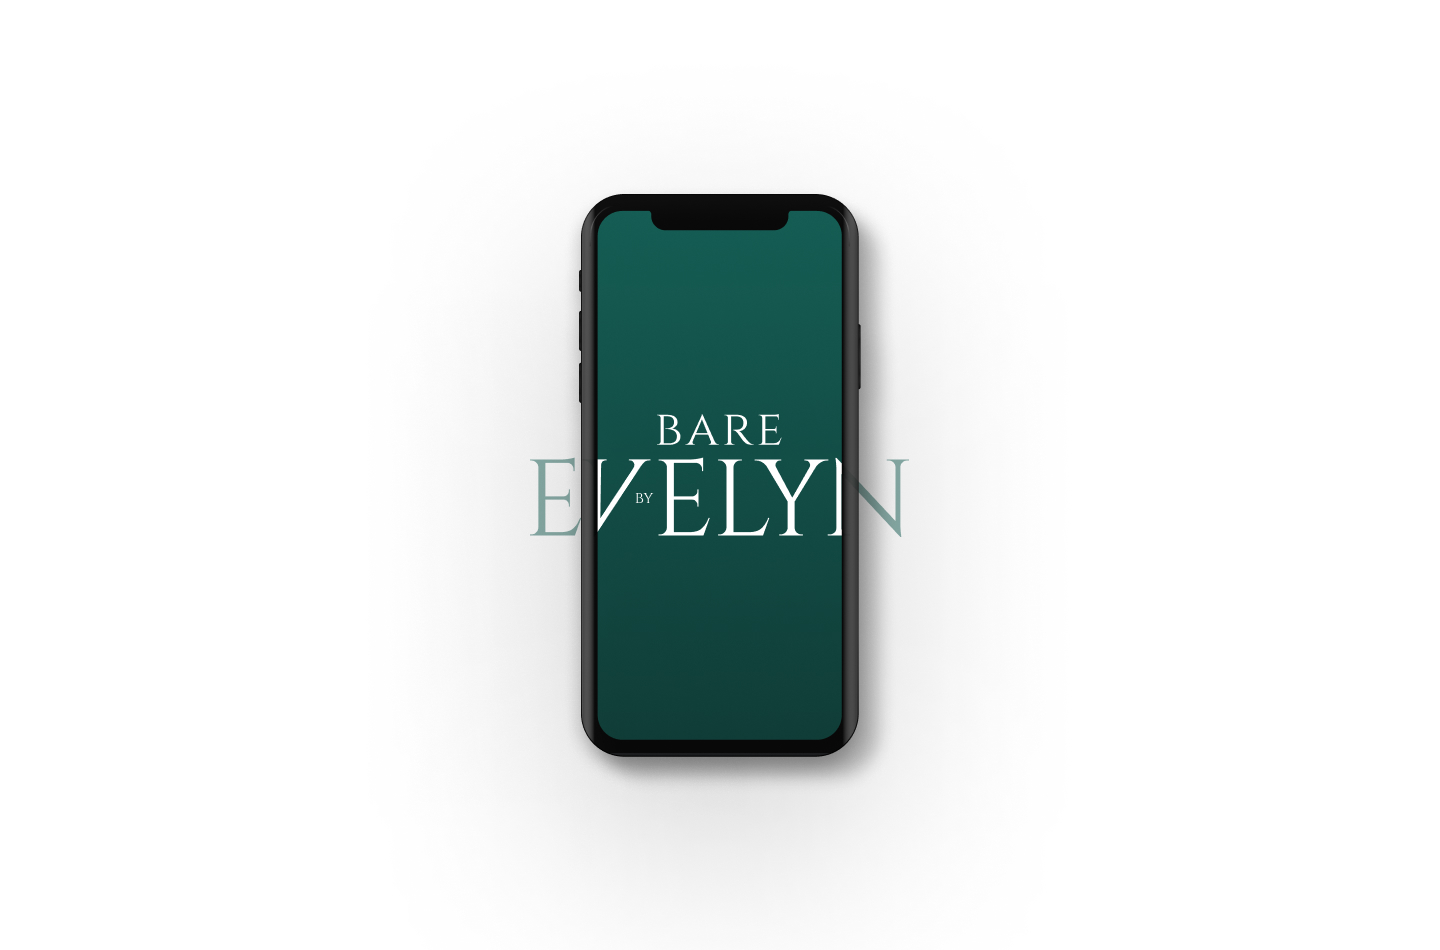 Bare By Evelyn Branding